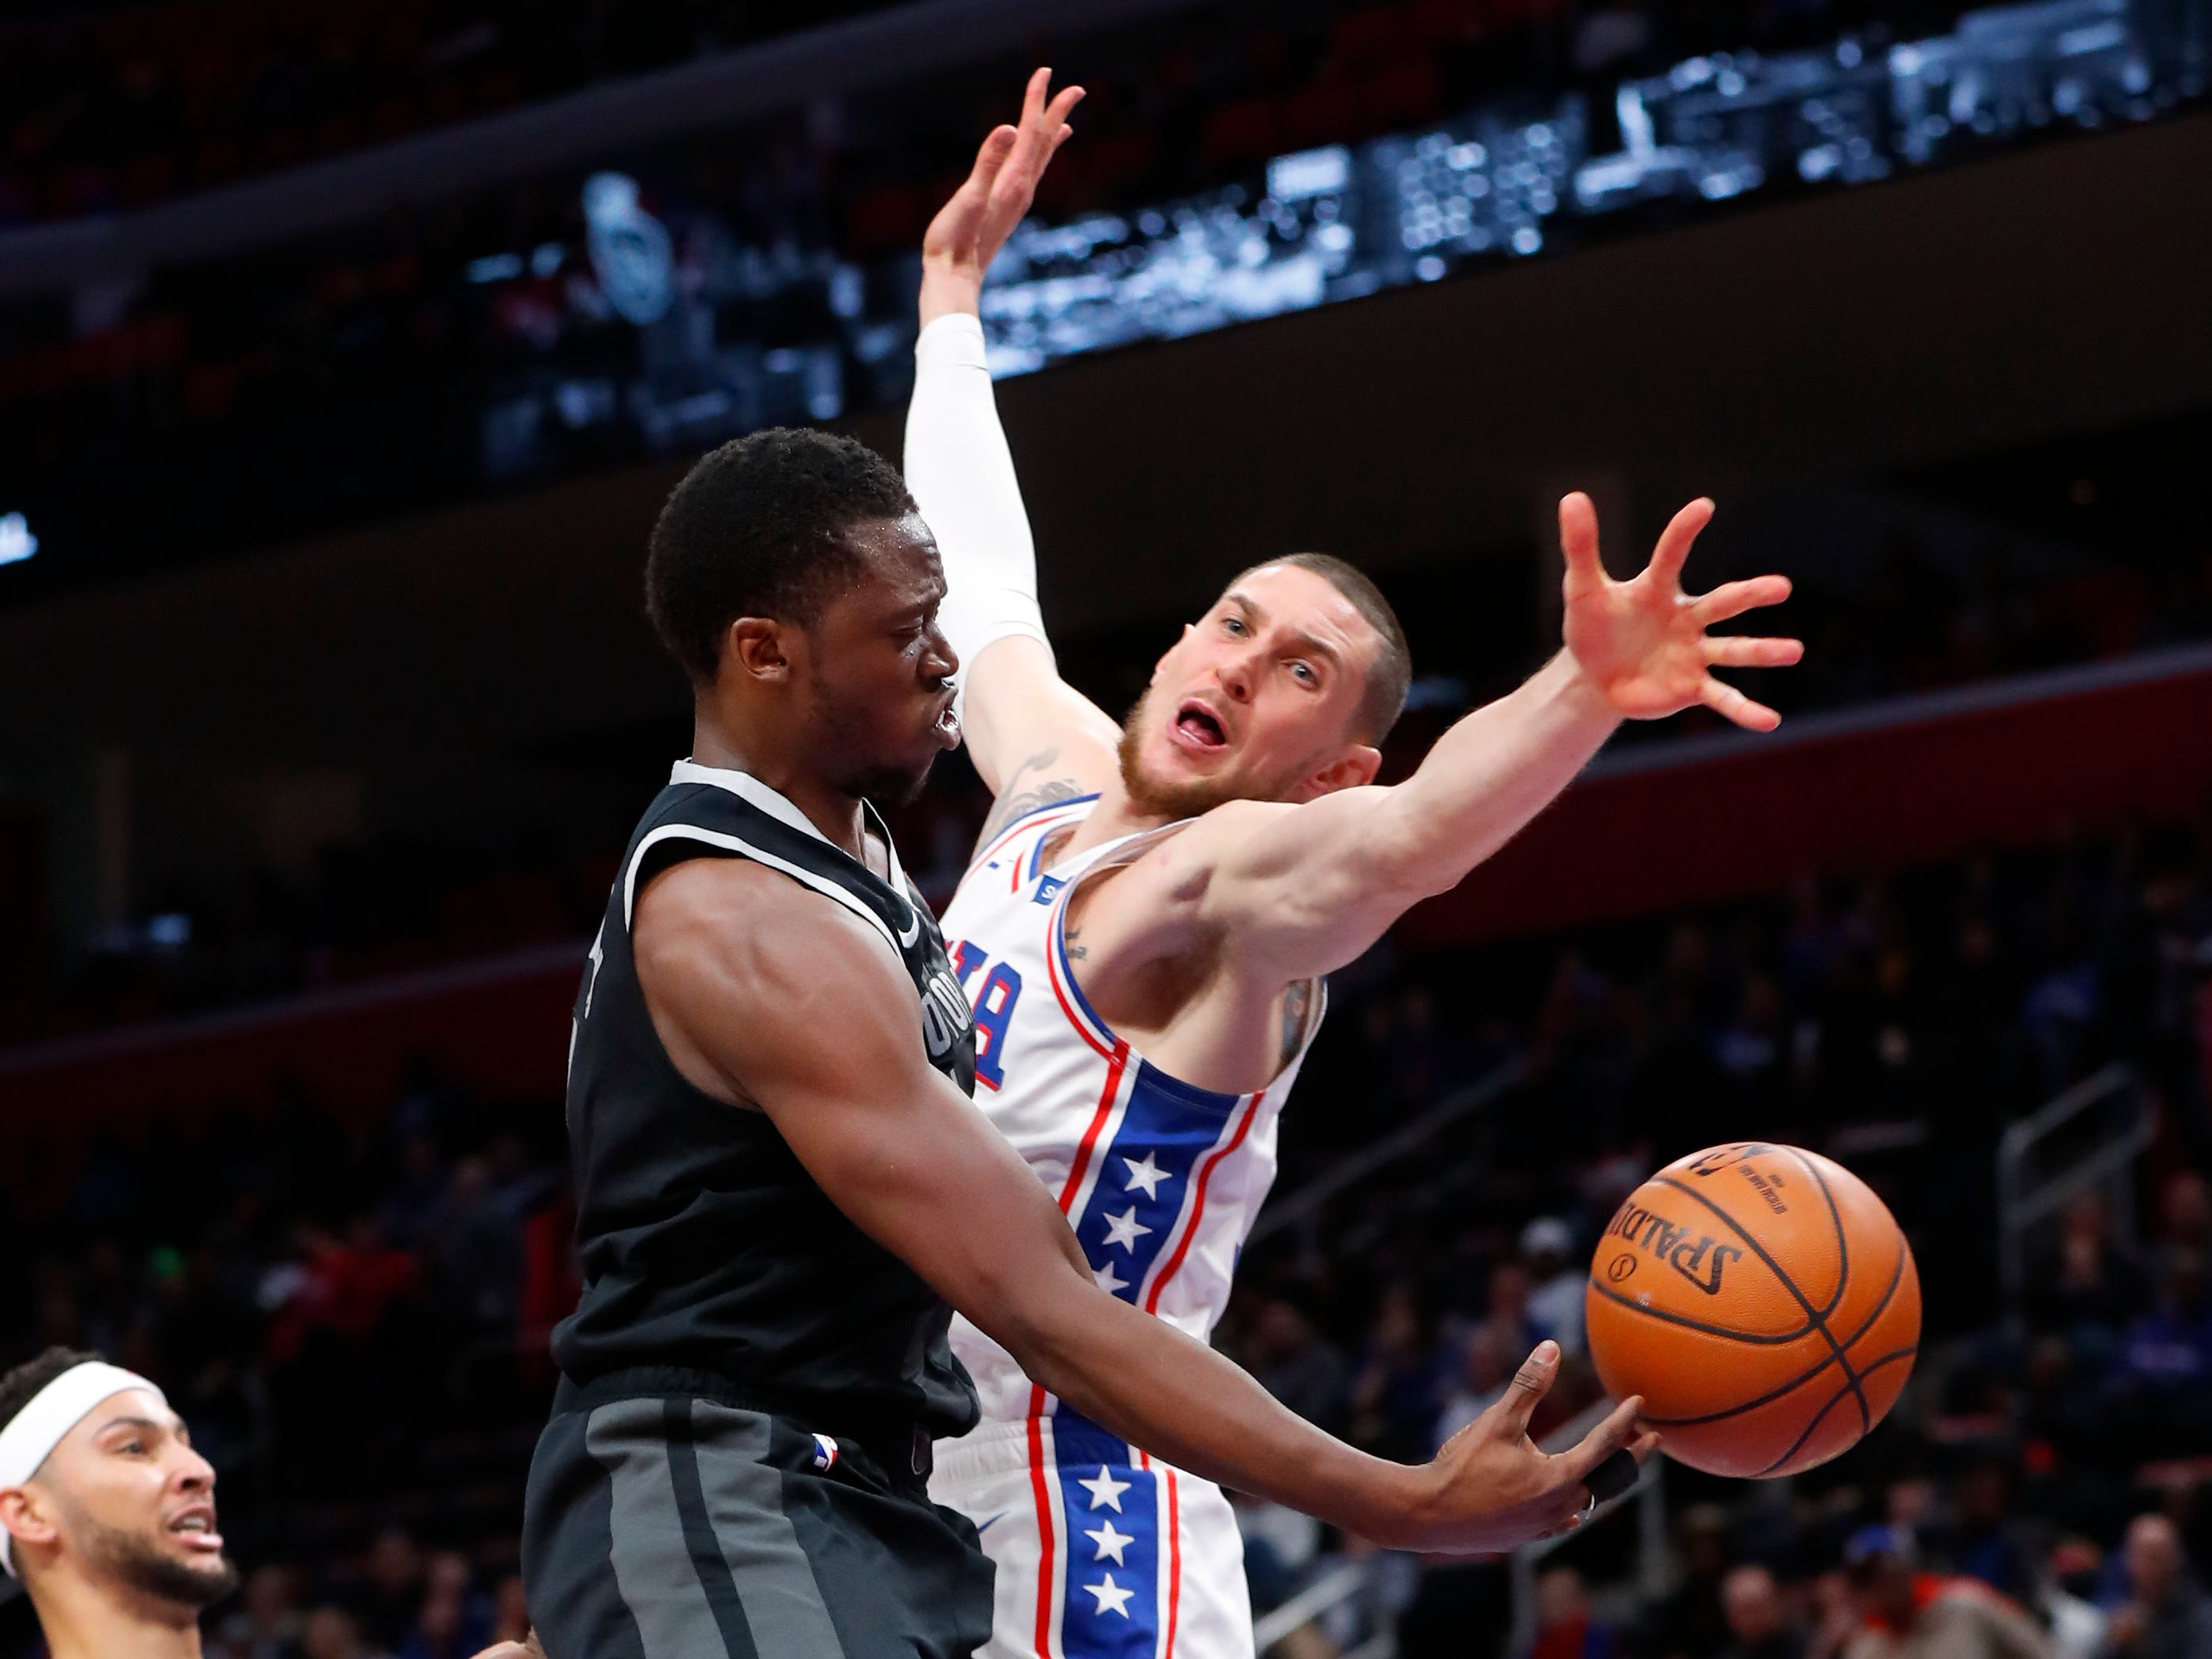 Detroit Pistons guard Reggie Jackson (1) passes around Philadelphia 76ers forward Mike Muscala (31) in the first half of their game in Detroit, Friday, Dec. 7, 2018.